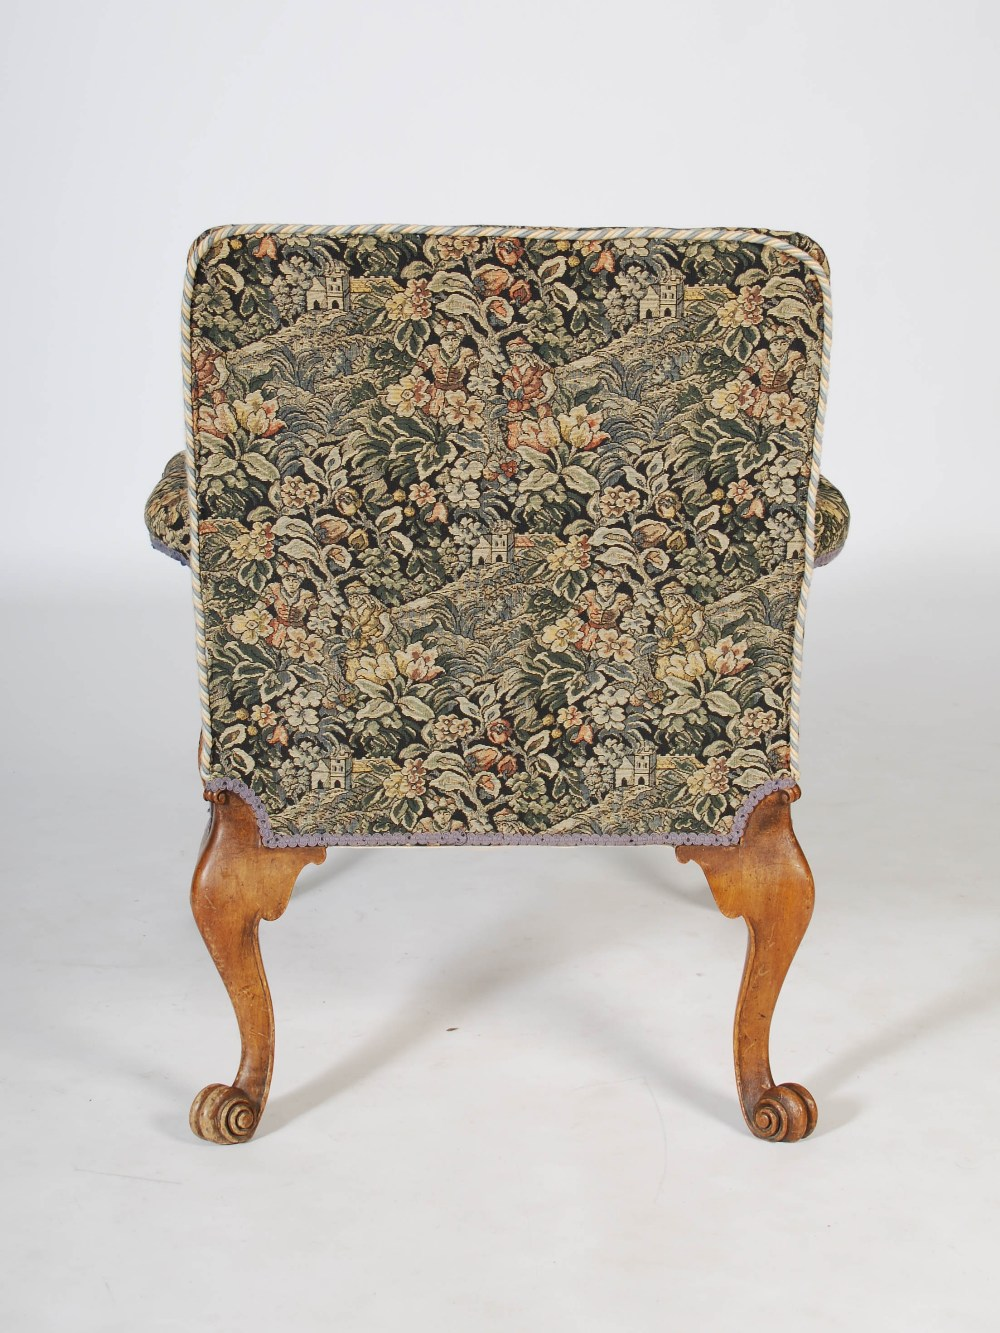 Lot 57 - A late 19th century mahogany George II style Gainsborough armchair, the needlework upholstered back,